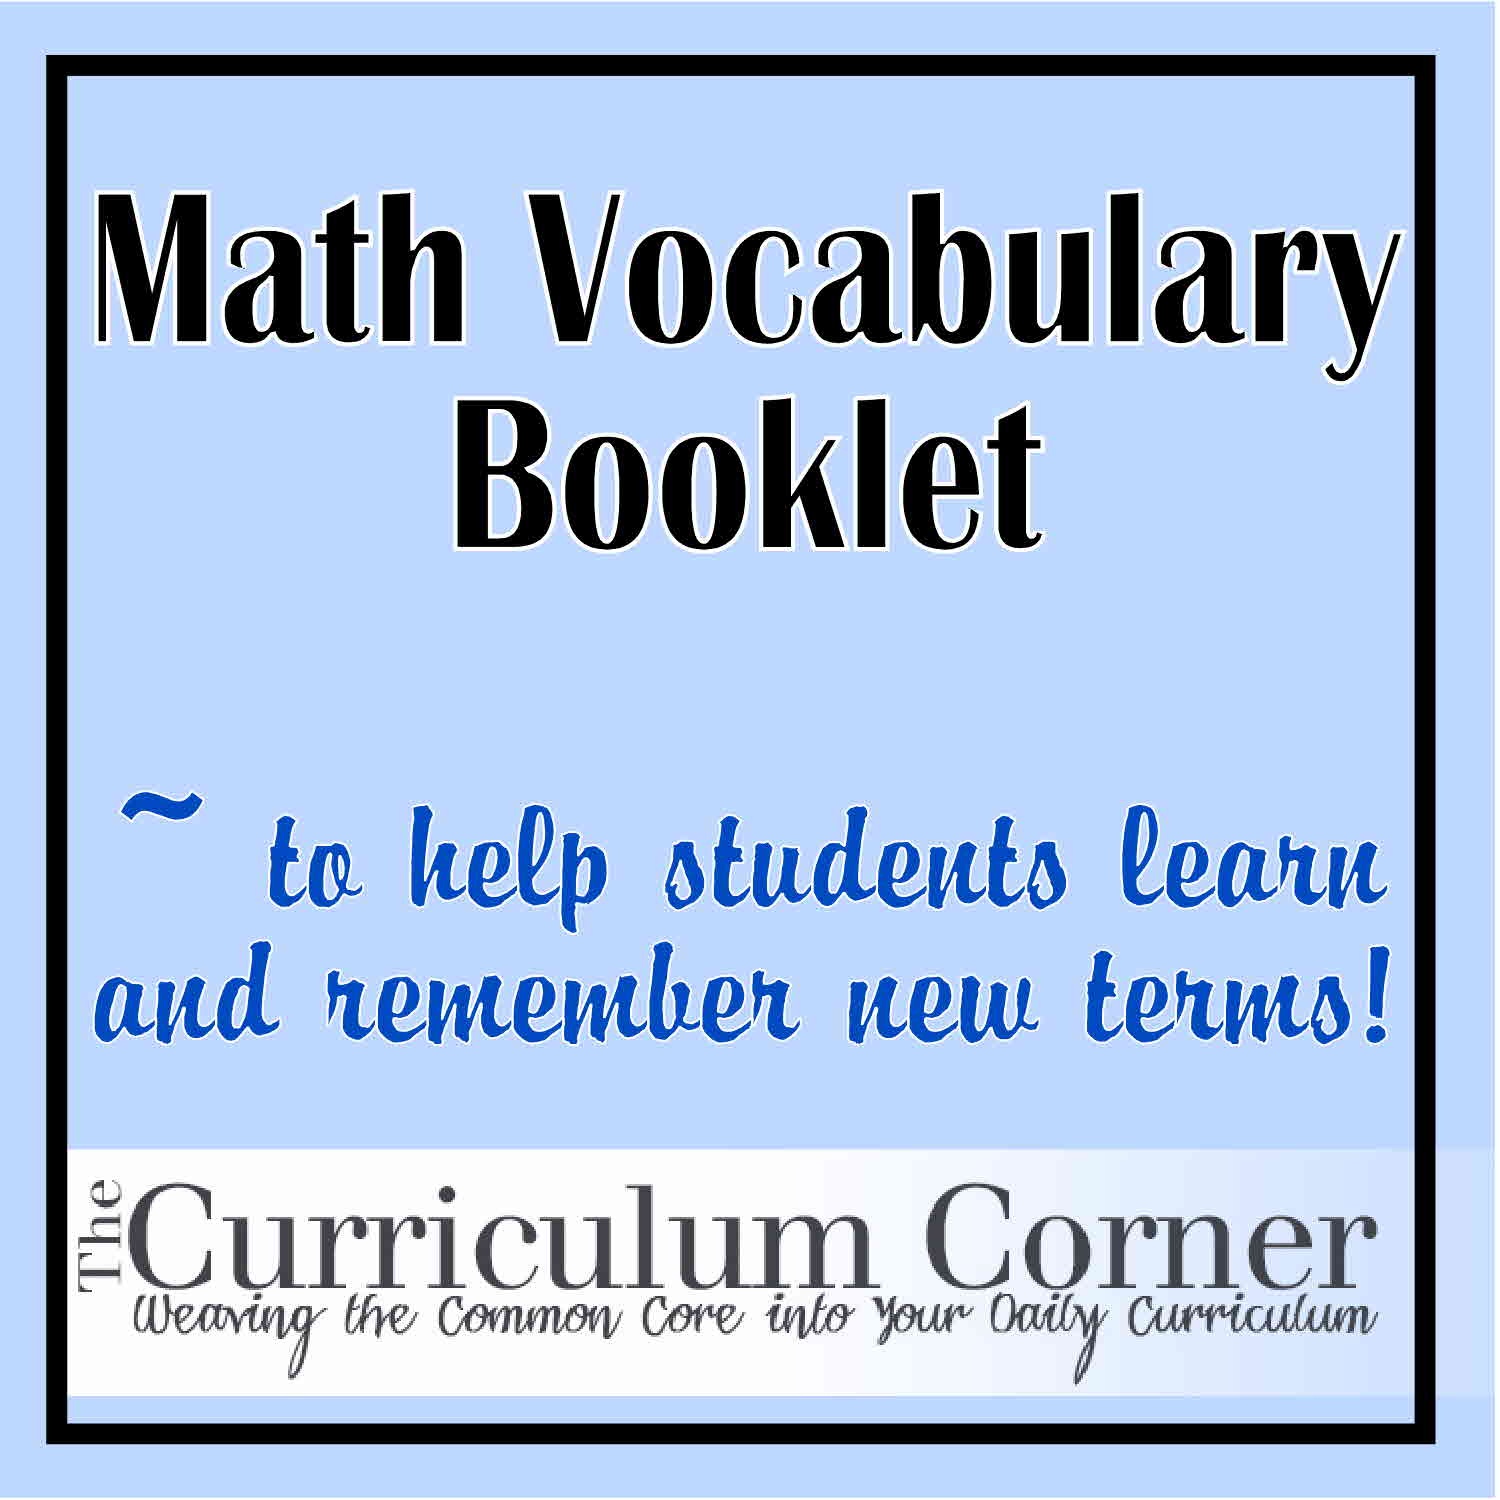 Blank Math Vocabulary Booklet For The Classroom